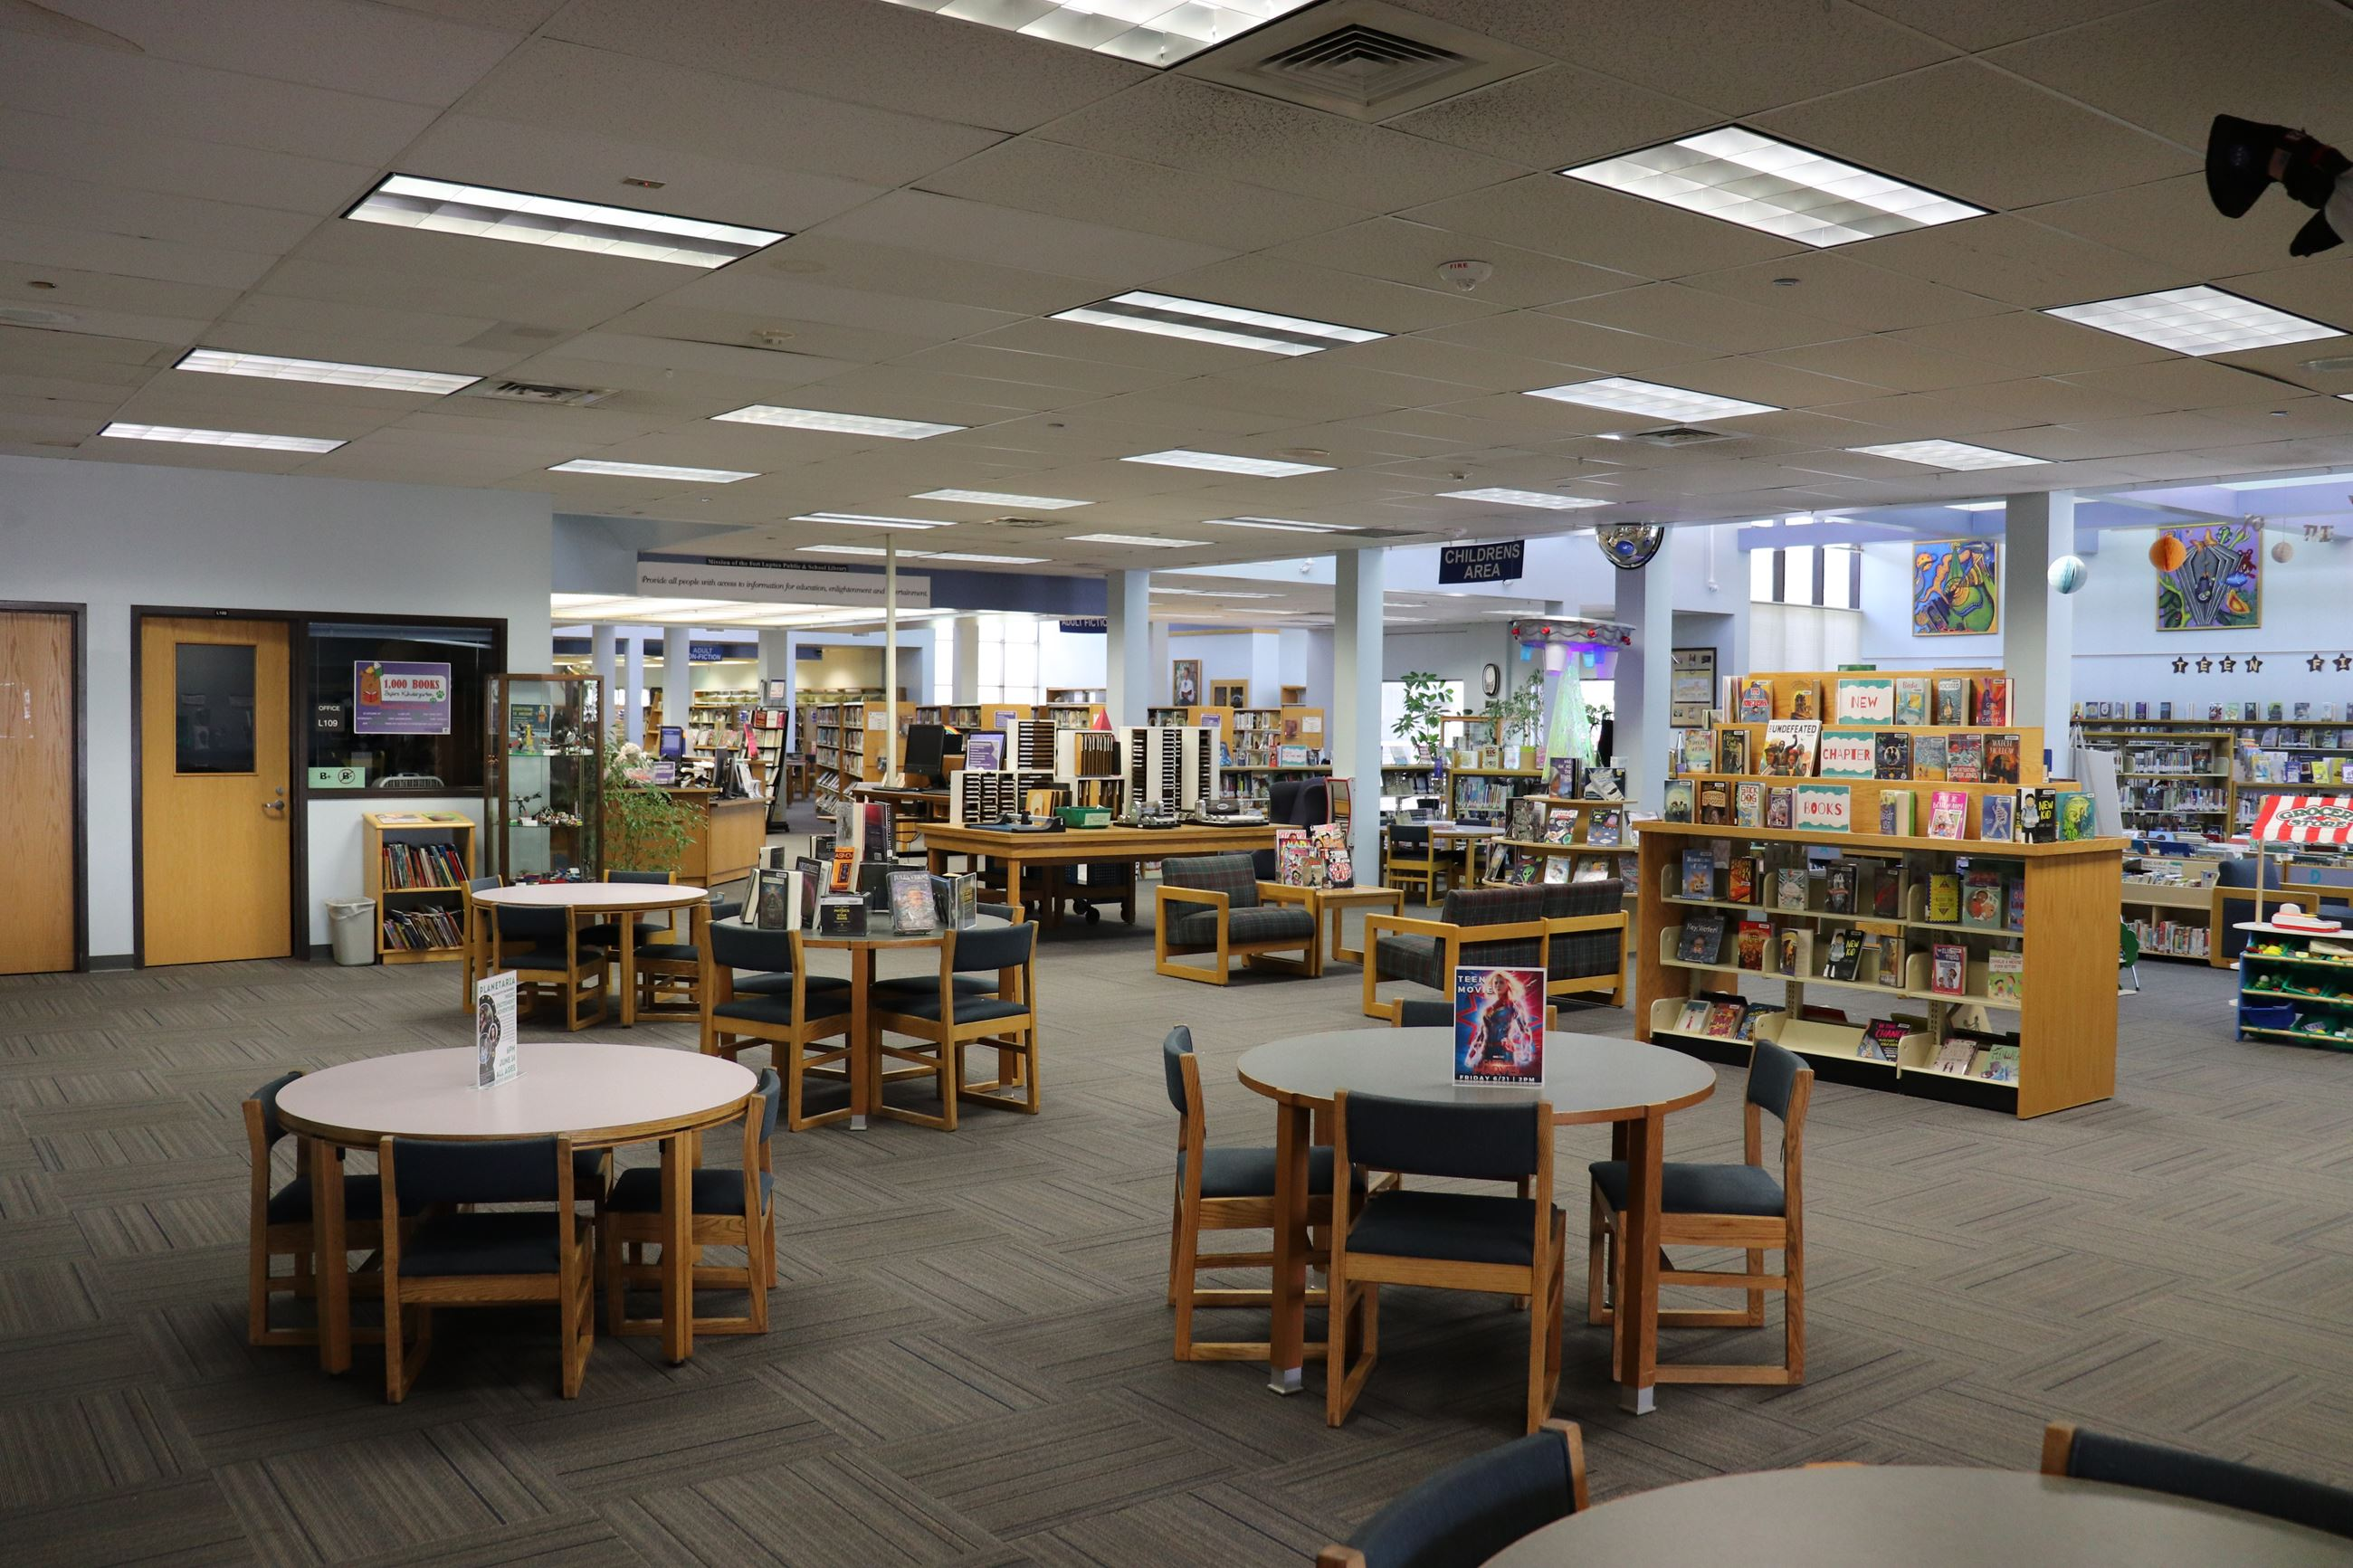 2019 Library Interior with tables, shelves, and books